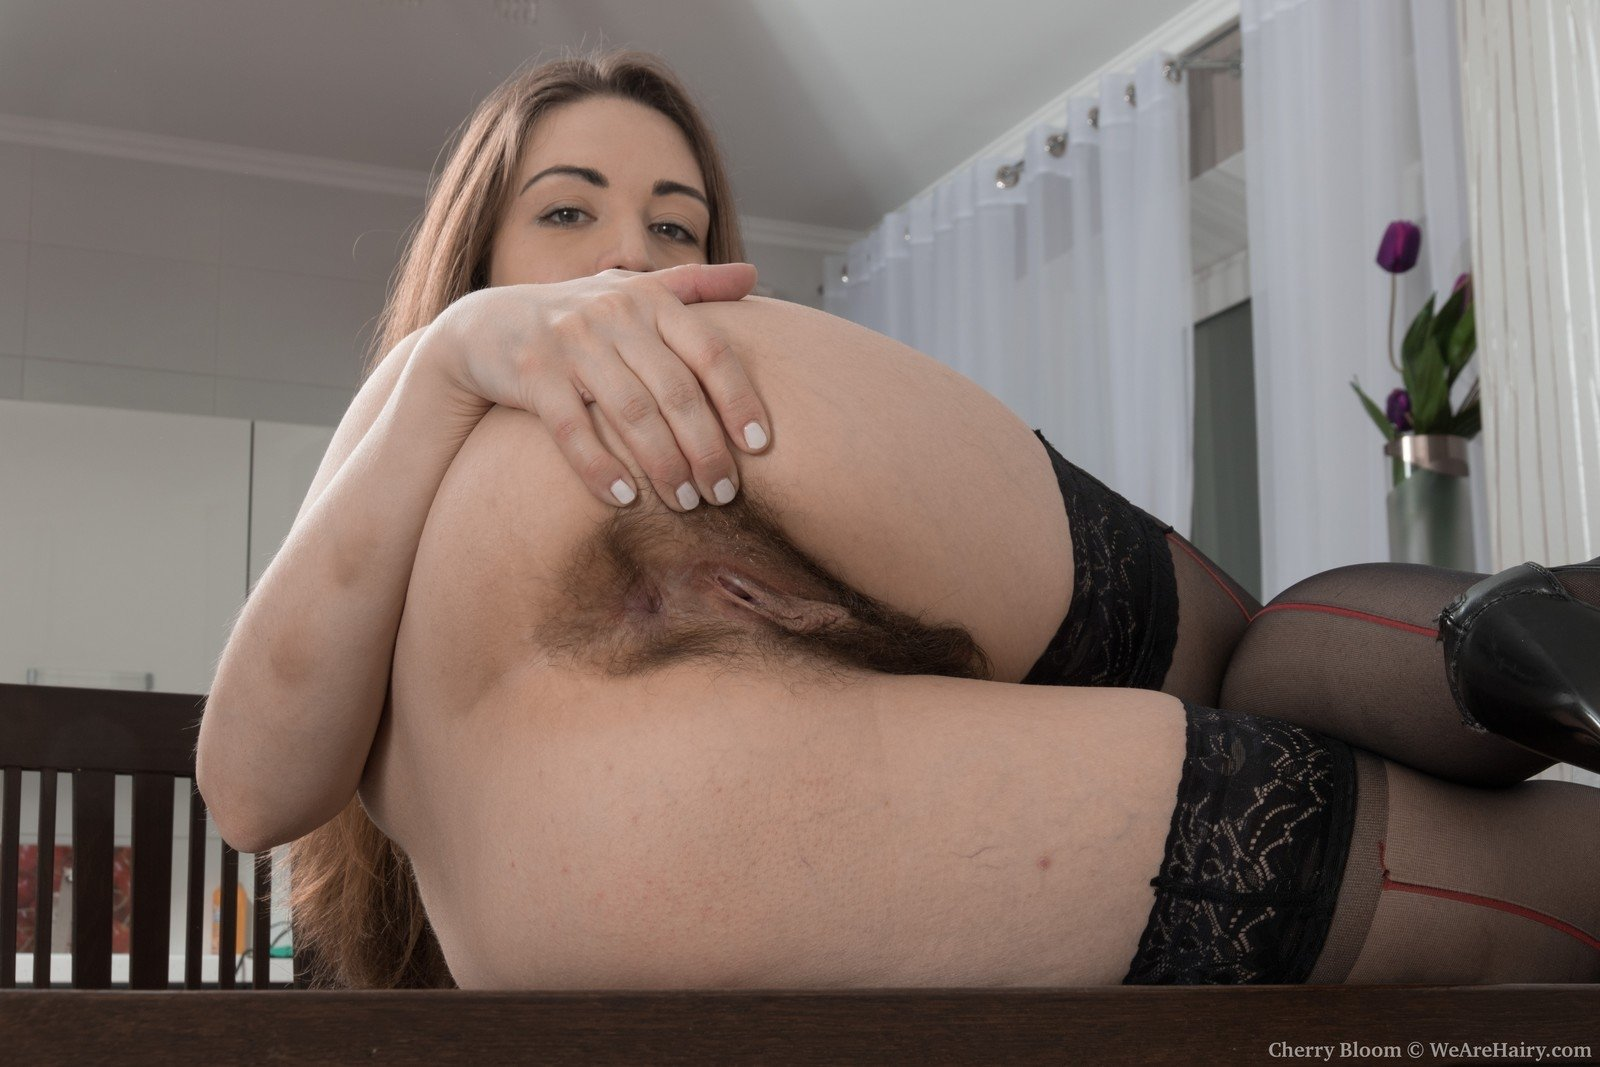 Husband and wife erotic videos #1